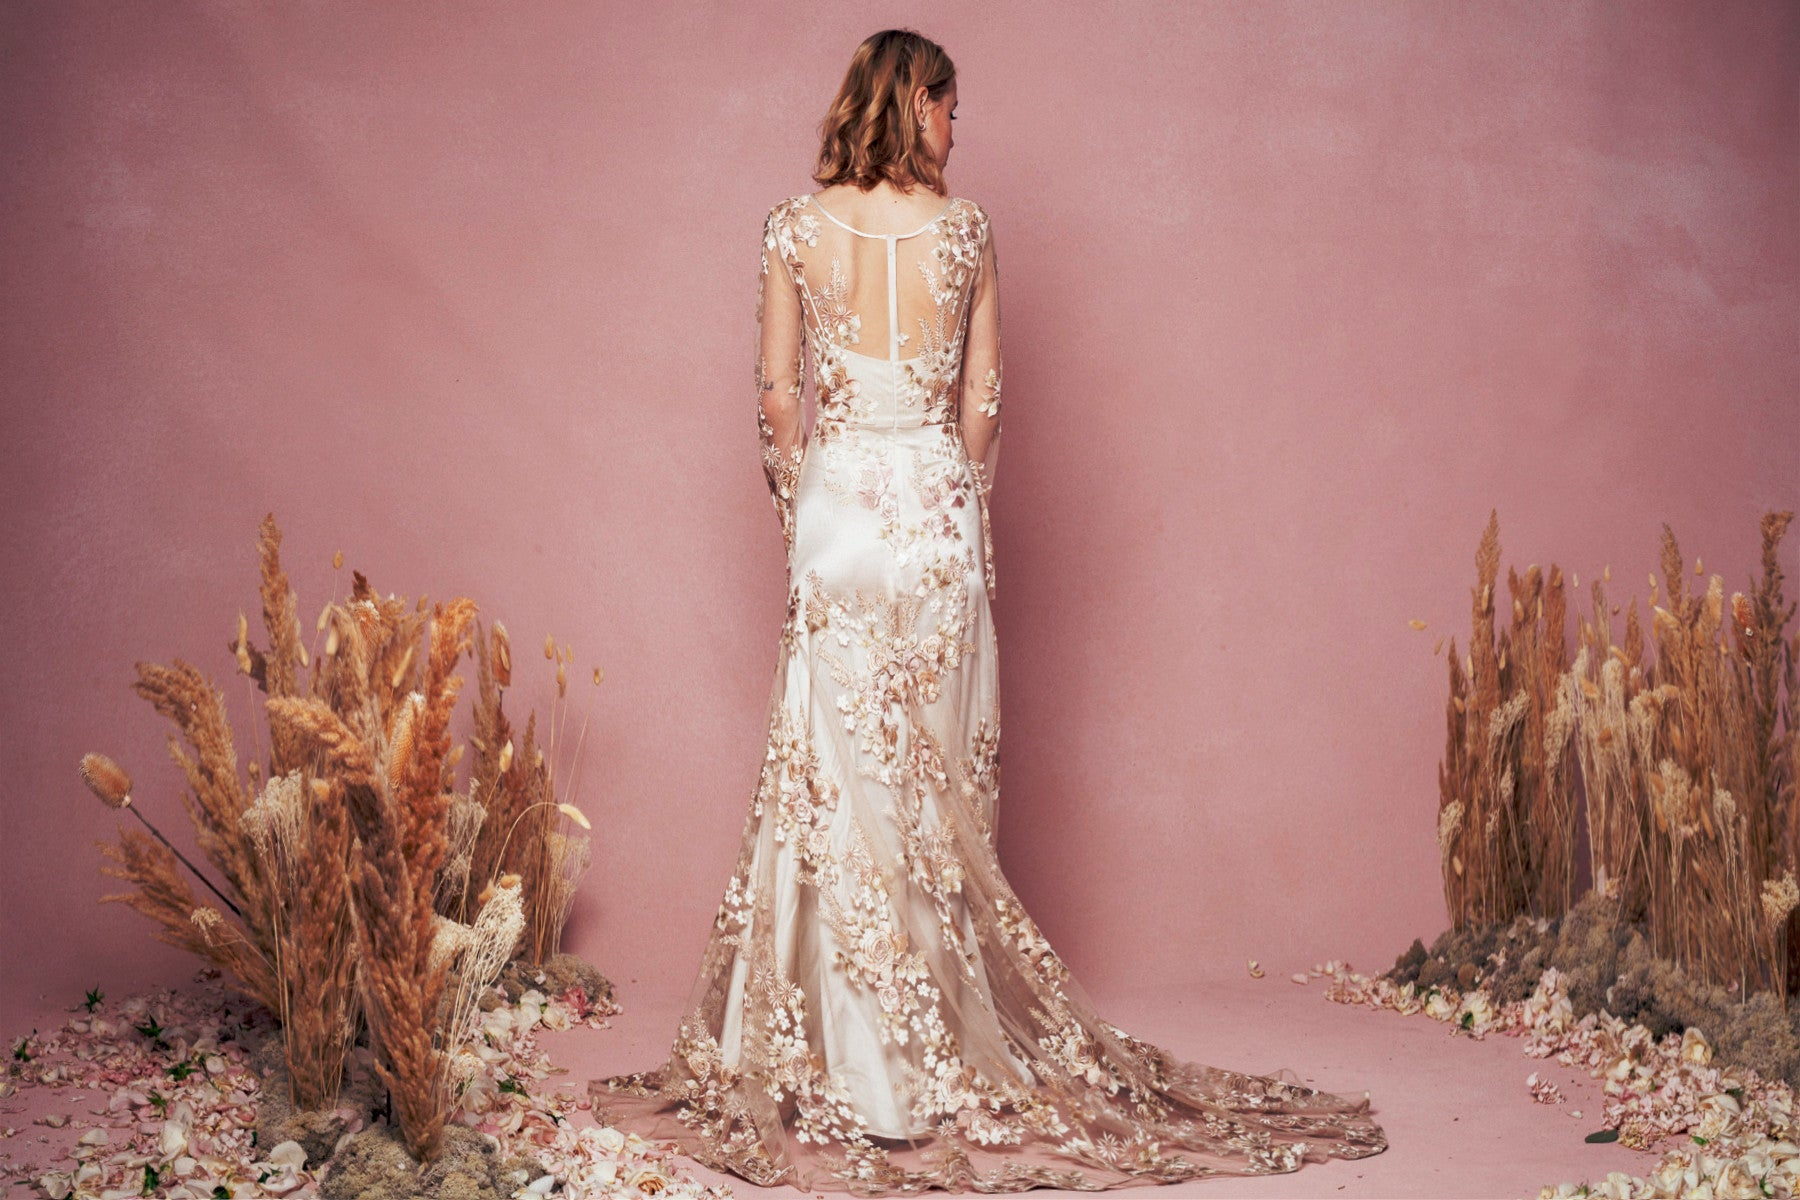 THE ALYSE GOWN